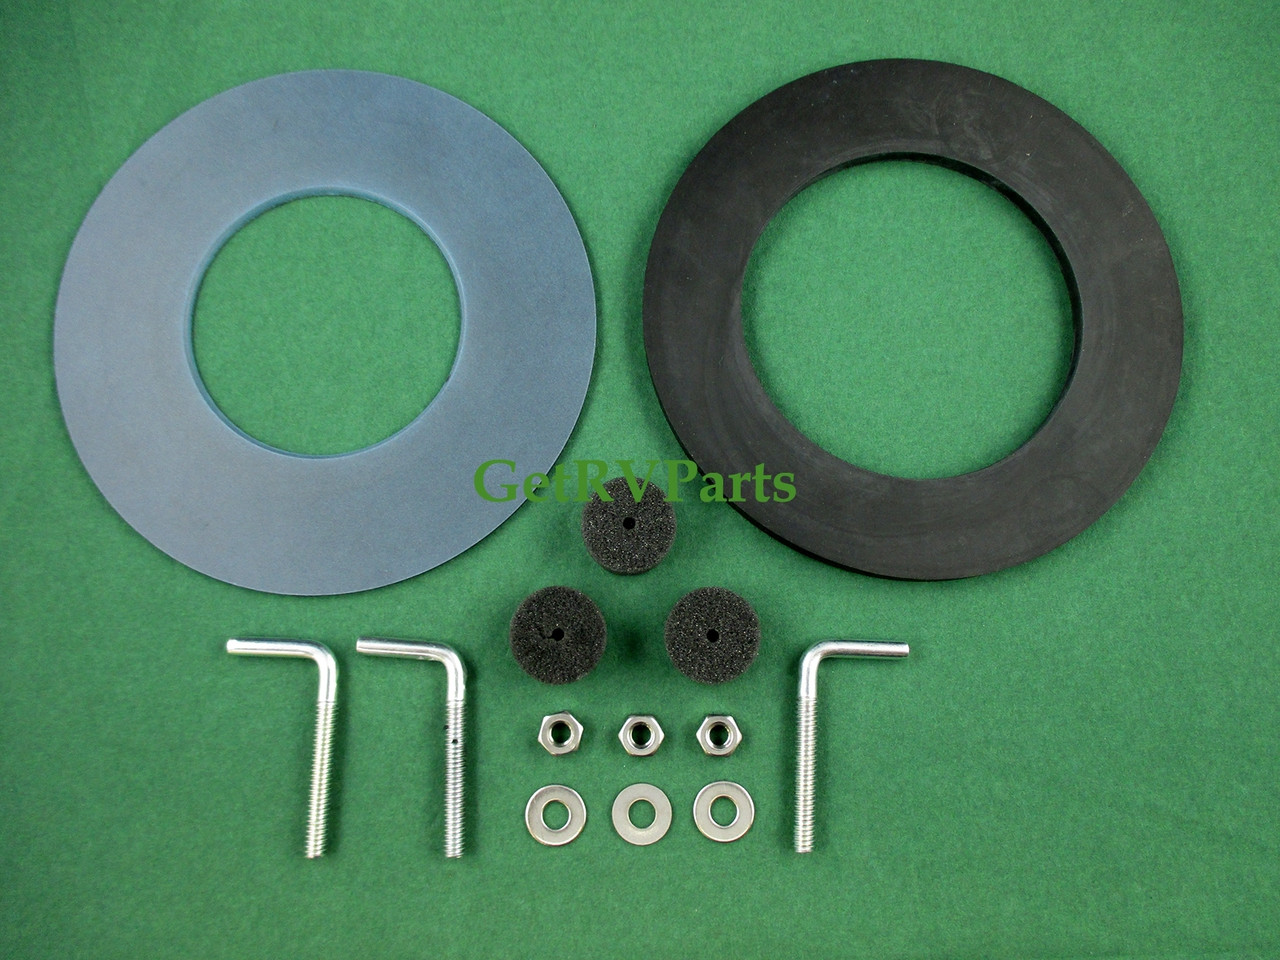 Dometic 385311009 Sealand RV Toilet Plug in Base Seal Kit